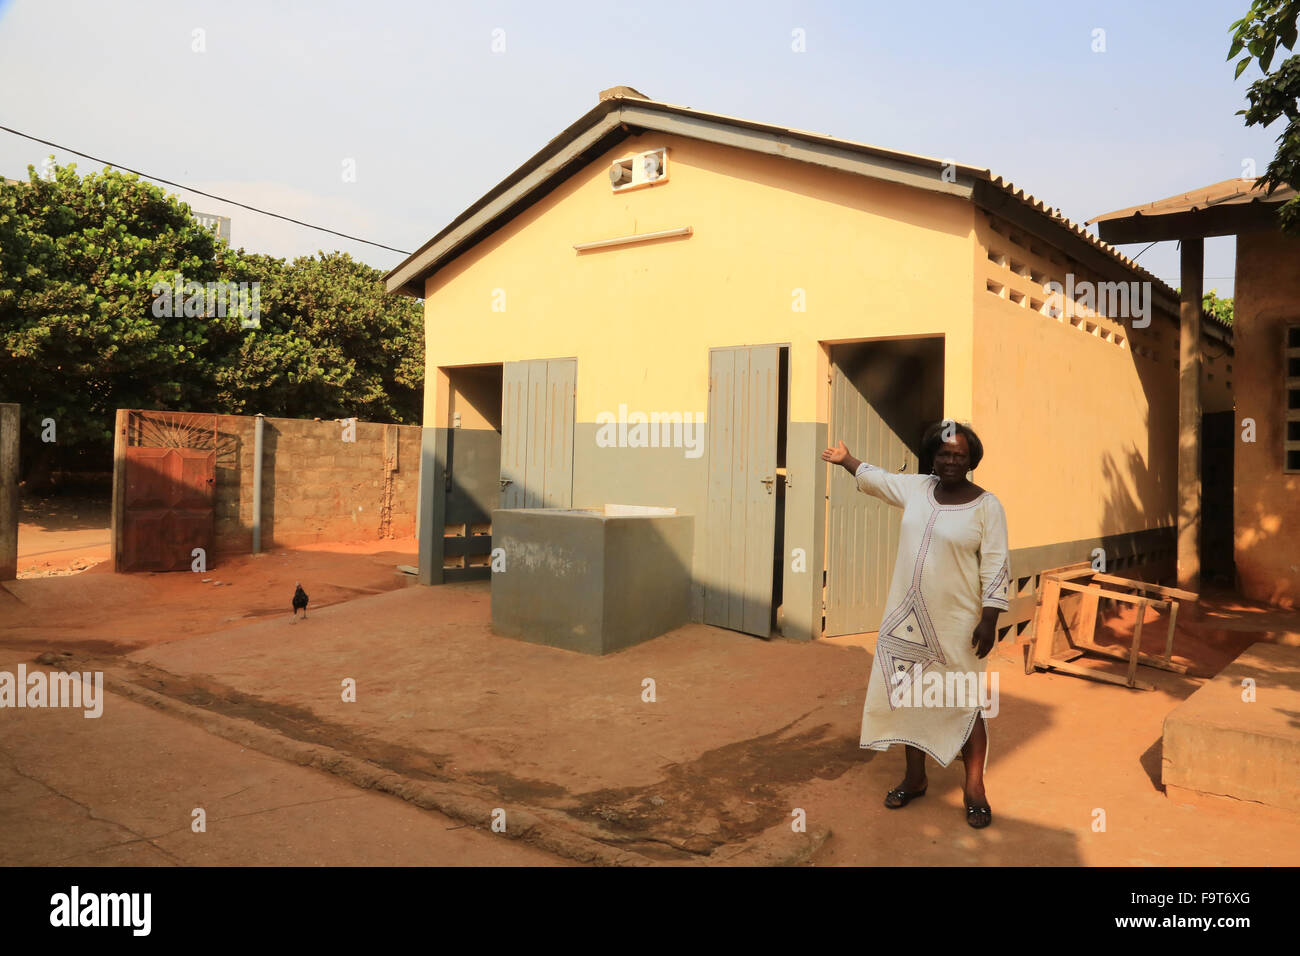 The latrines. School renovated by The Chain of Hope NGO. - Stock Image